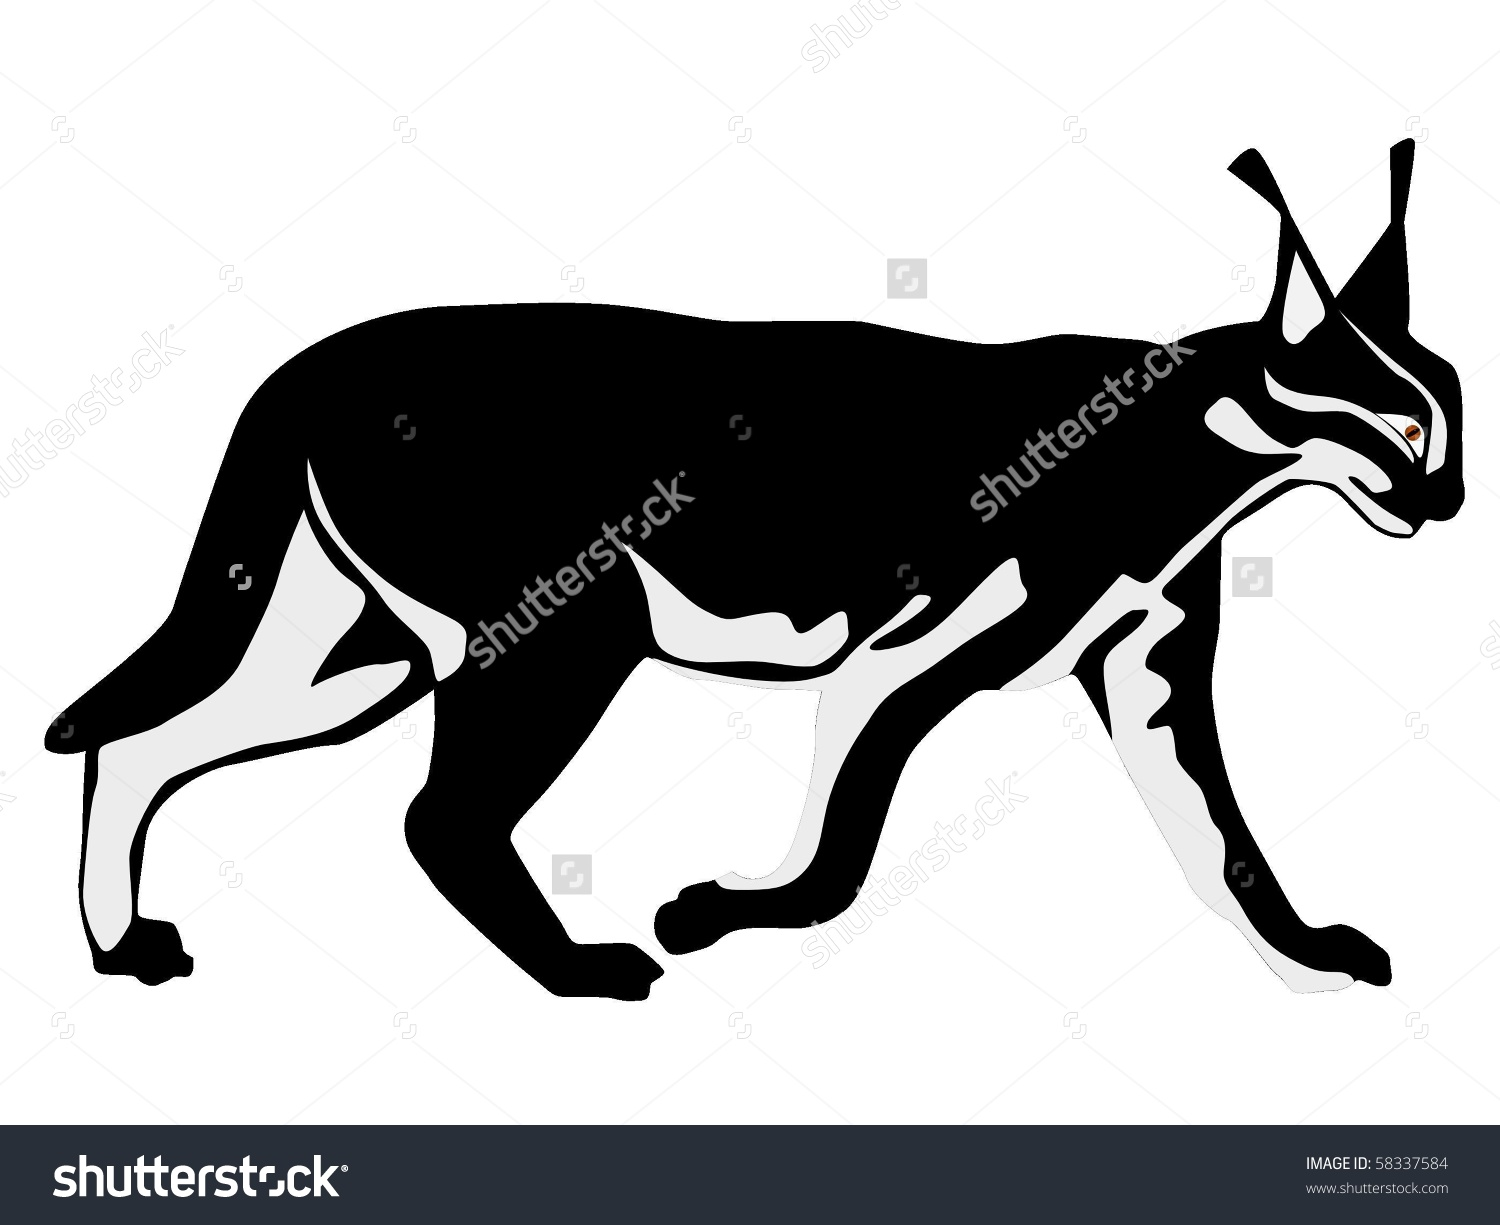 Caracal clipart #15, Download drawings